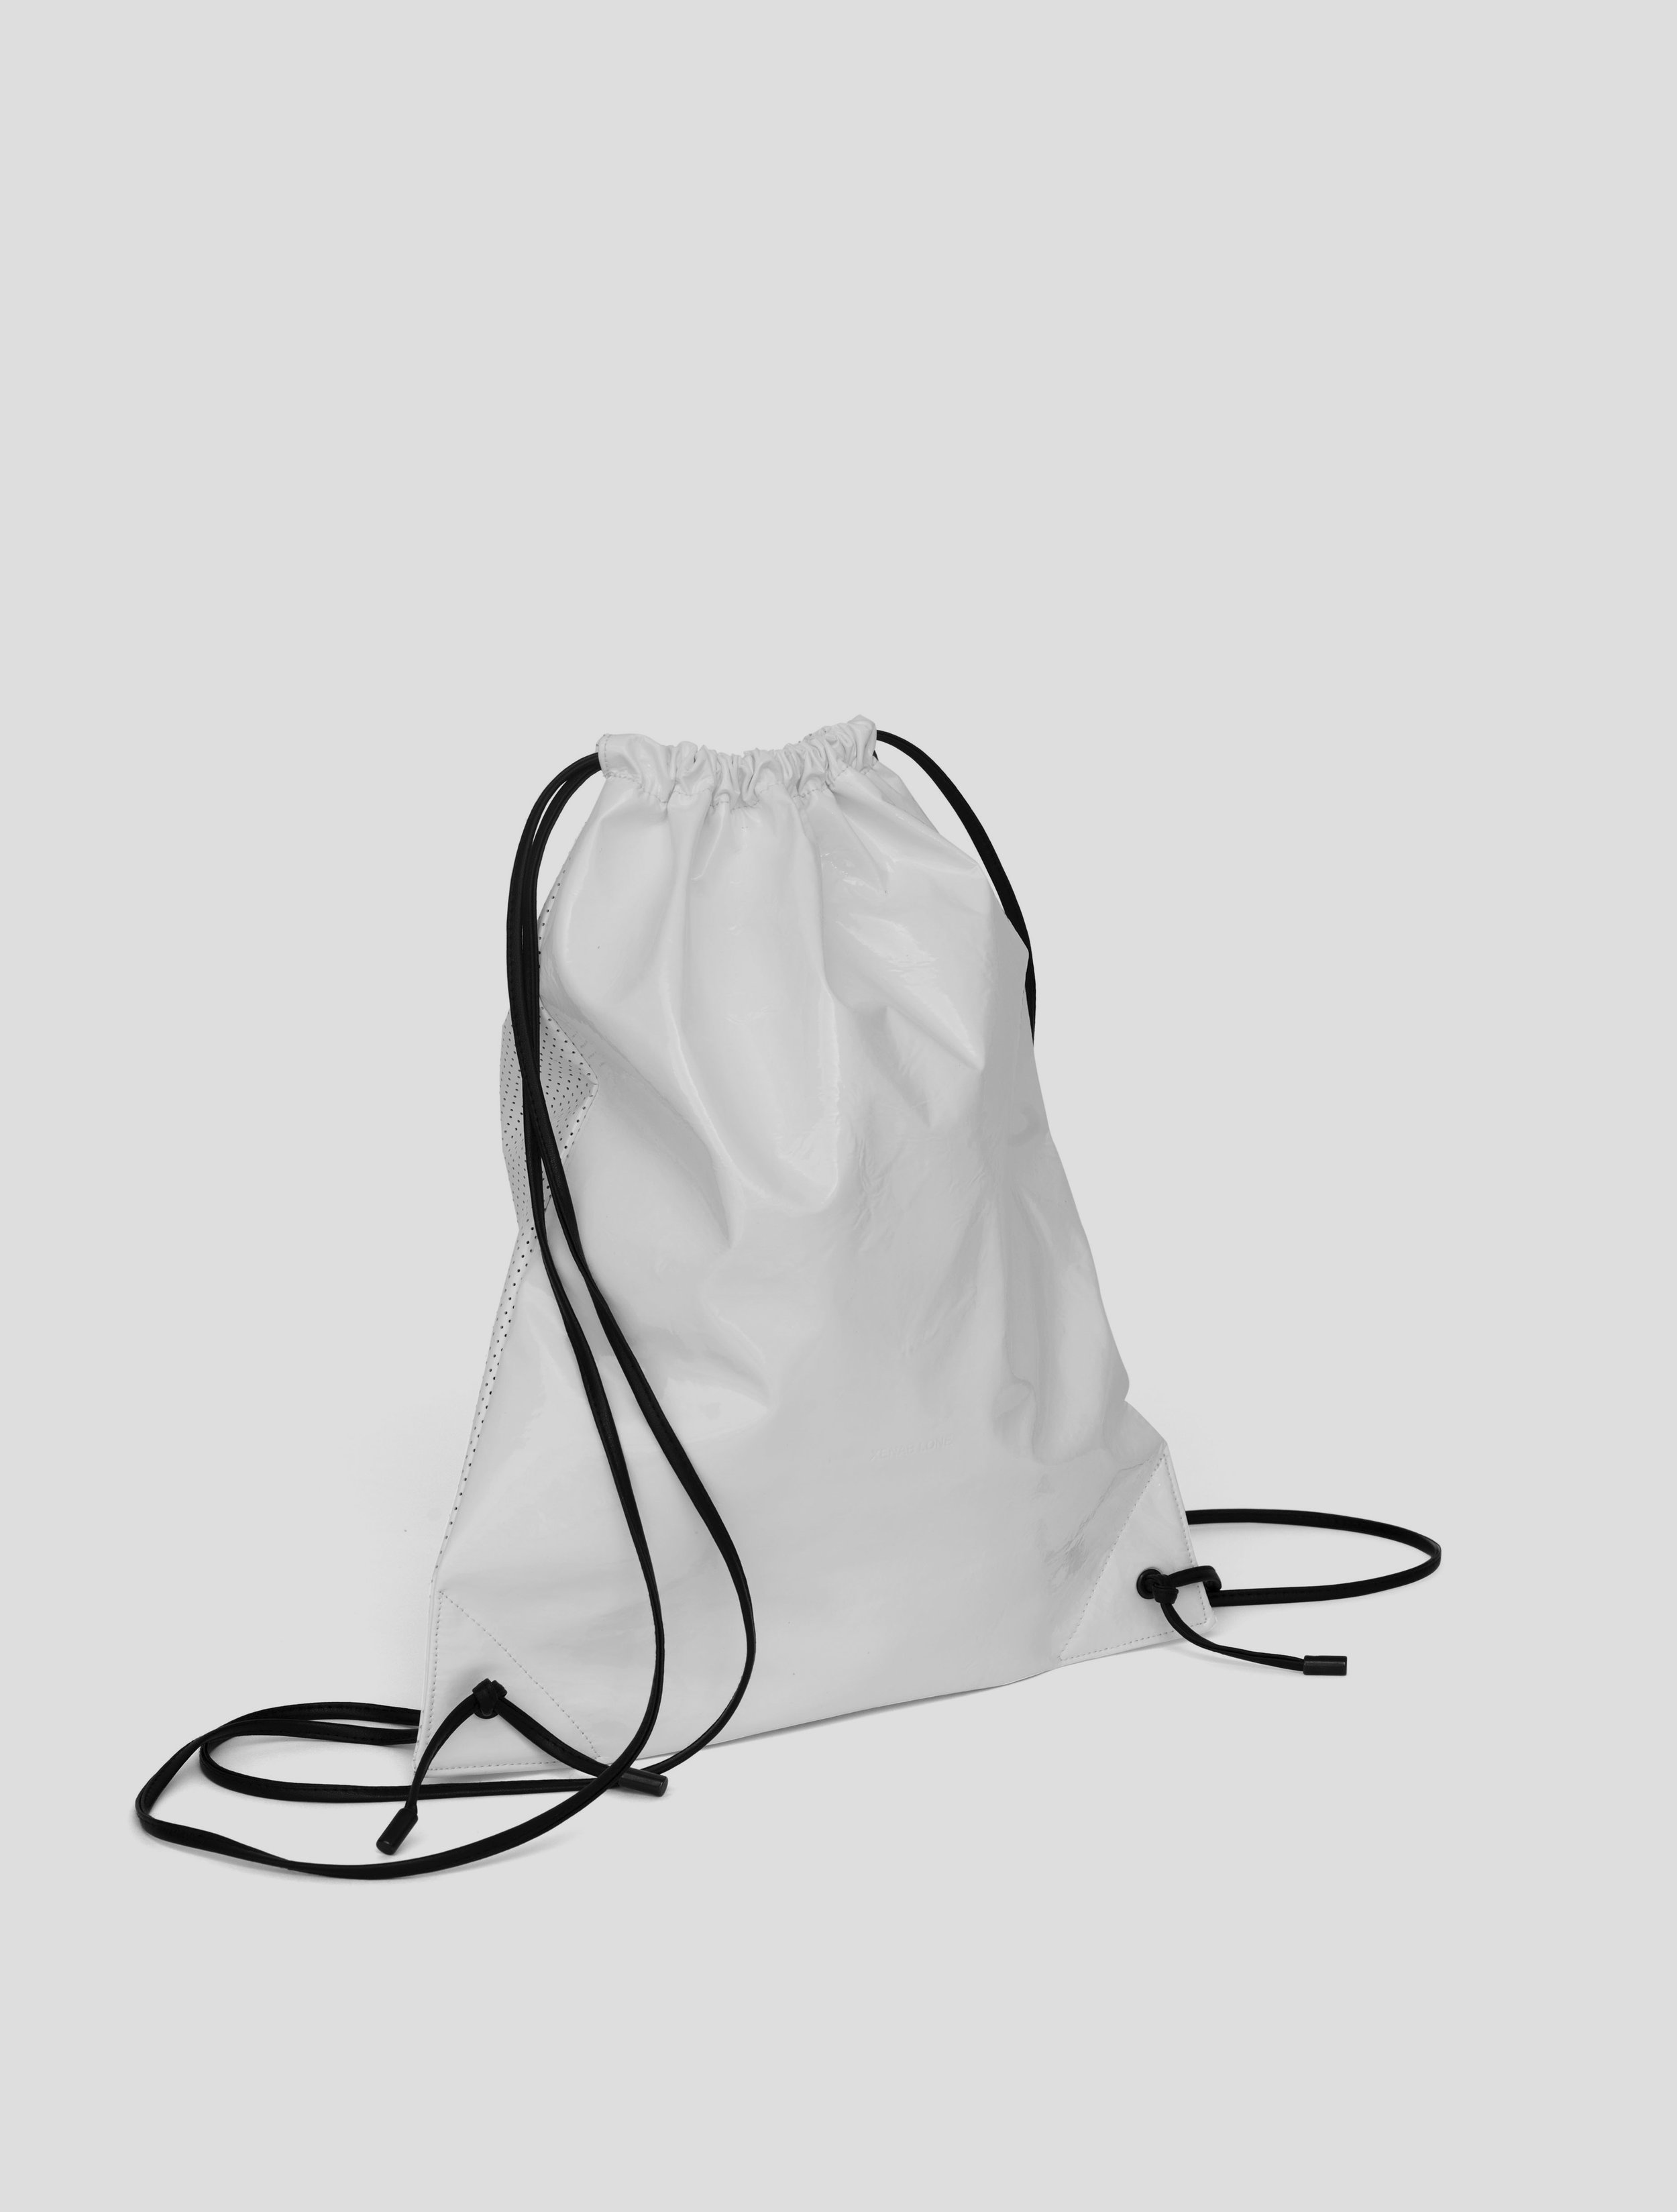 DRAWSTRING WHITE PERFORATED FRONT.jpg